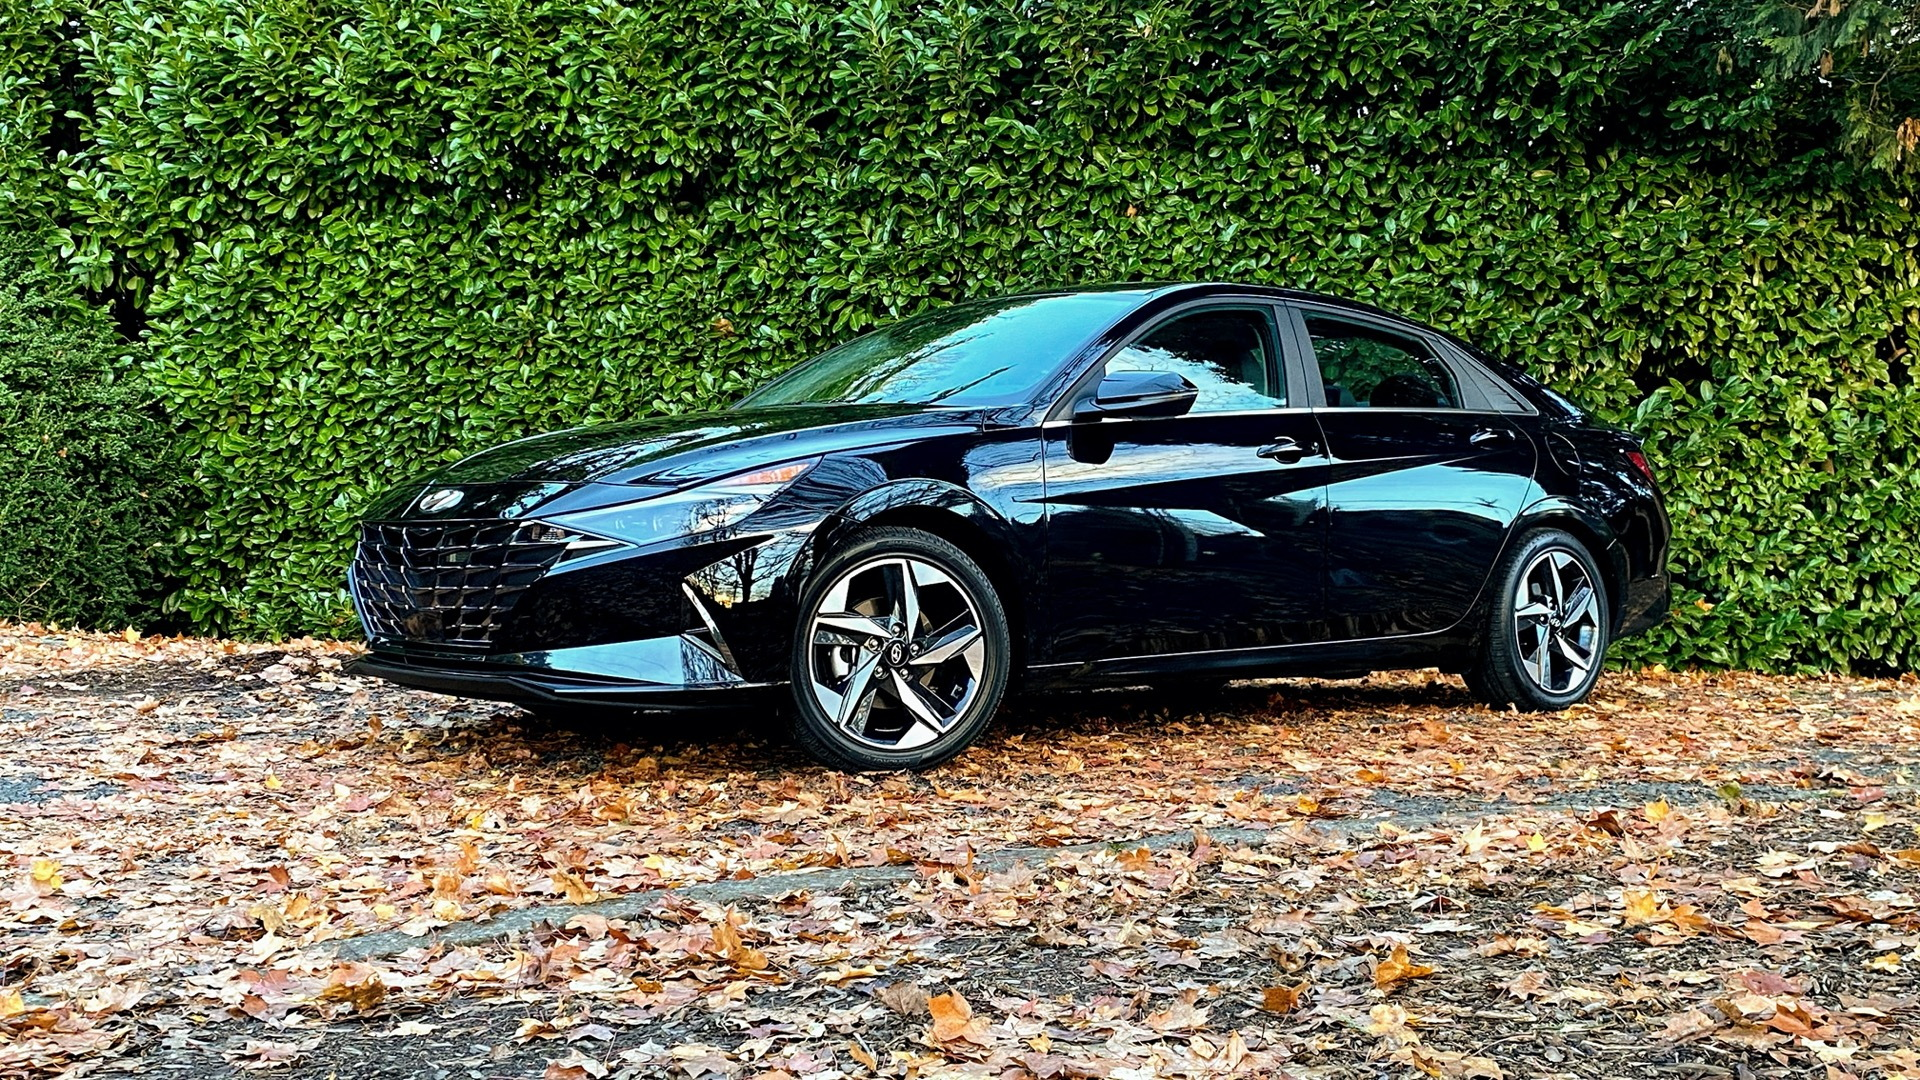 2021 Hyundai Elantra Hybrid Limited  -  Review update, December 2020